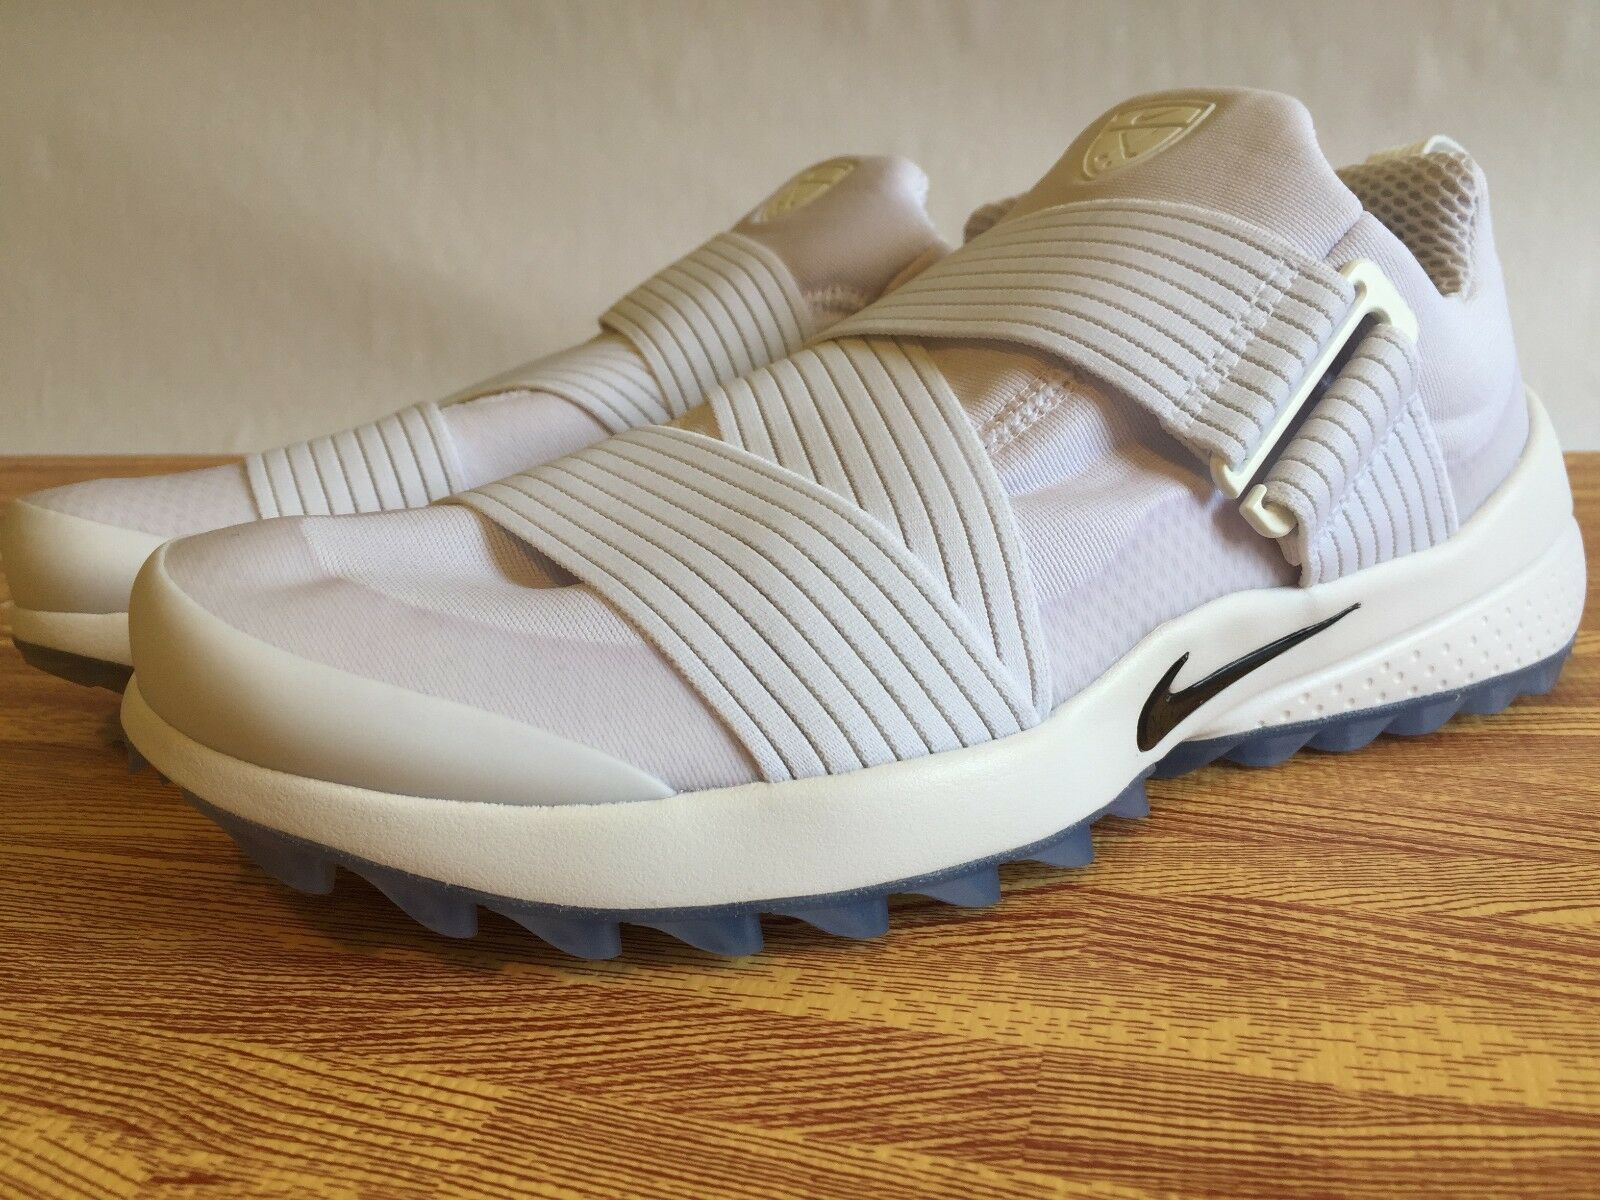 Nike Air Zoom Gimme Golf Shoes Price reduction White, SIZE 11 New shoes for men and women, limited time discount